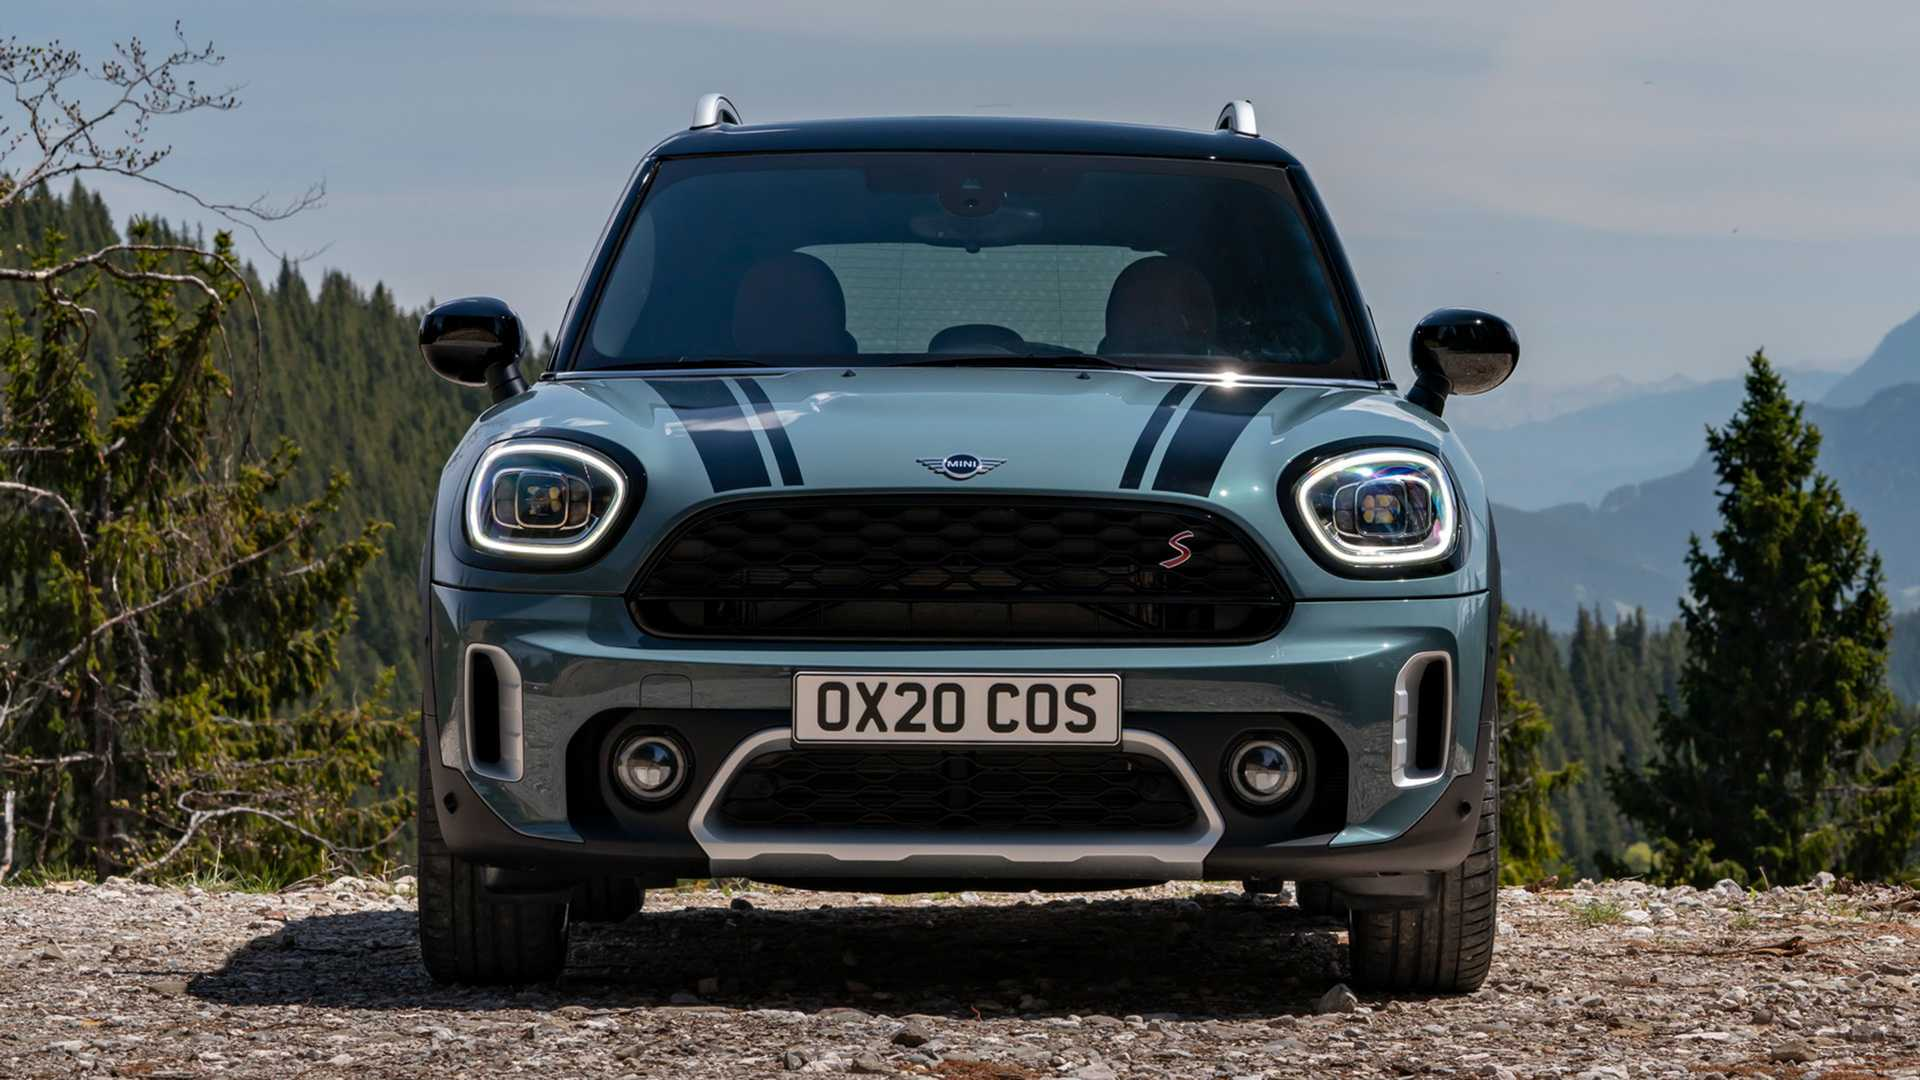 mini-cooper-s-countryman-all4-2020-9